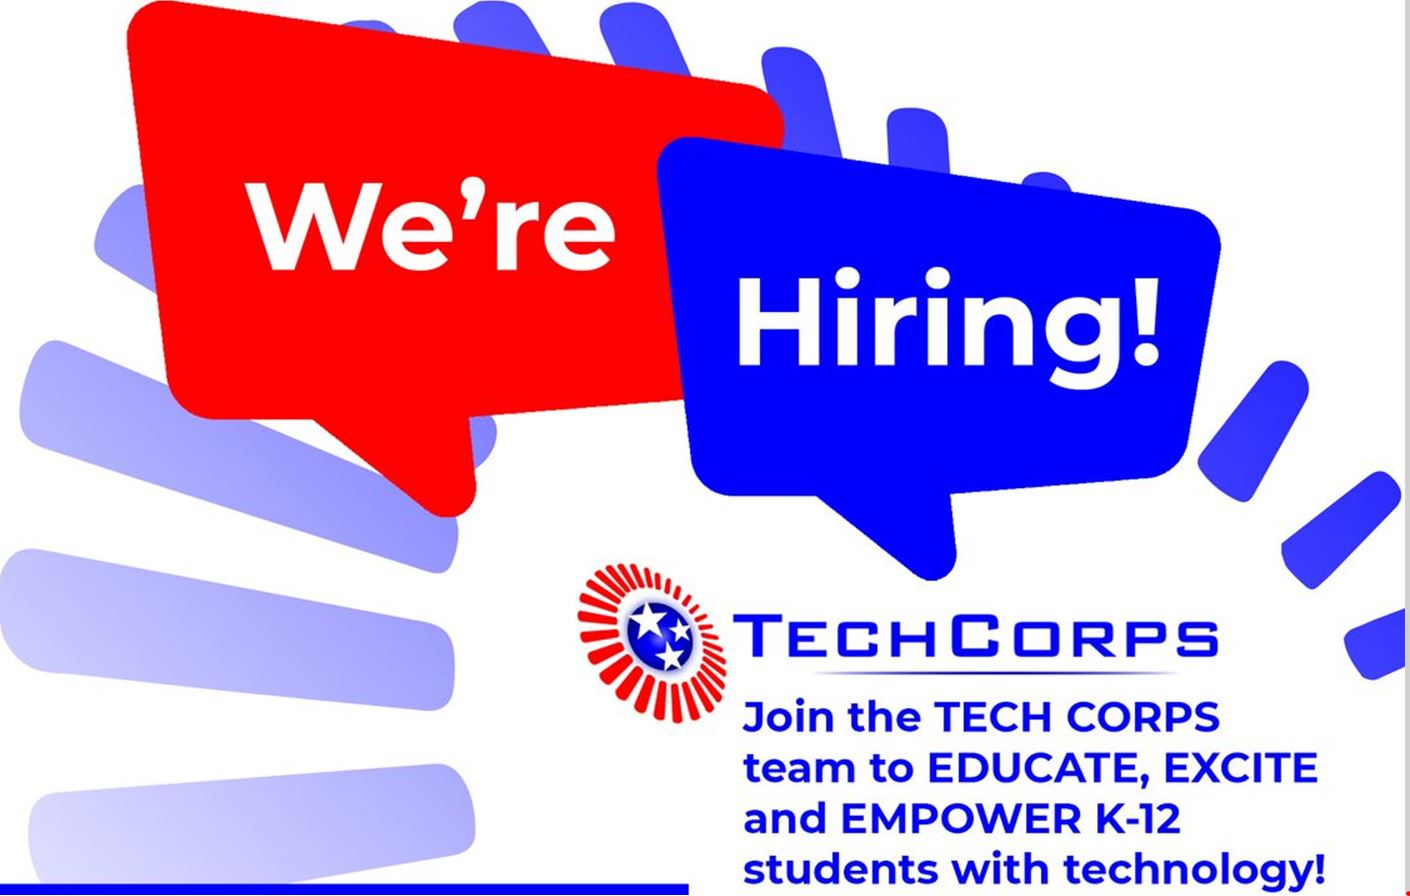 Tech Corps Now Hiring for Summer Opportunities